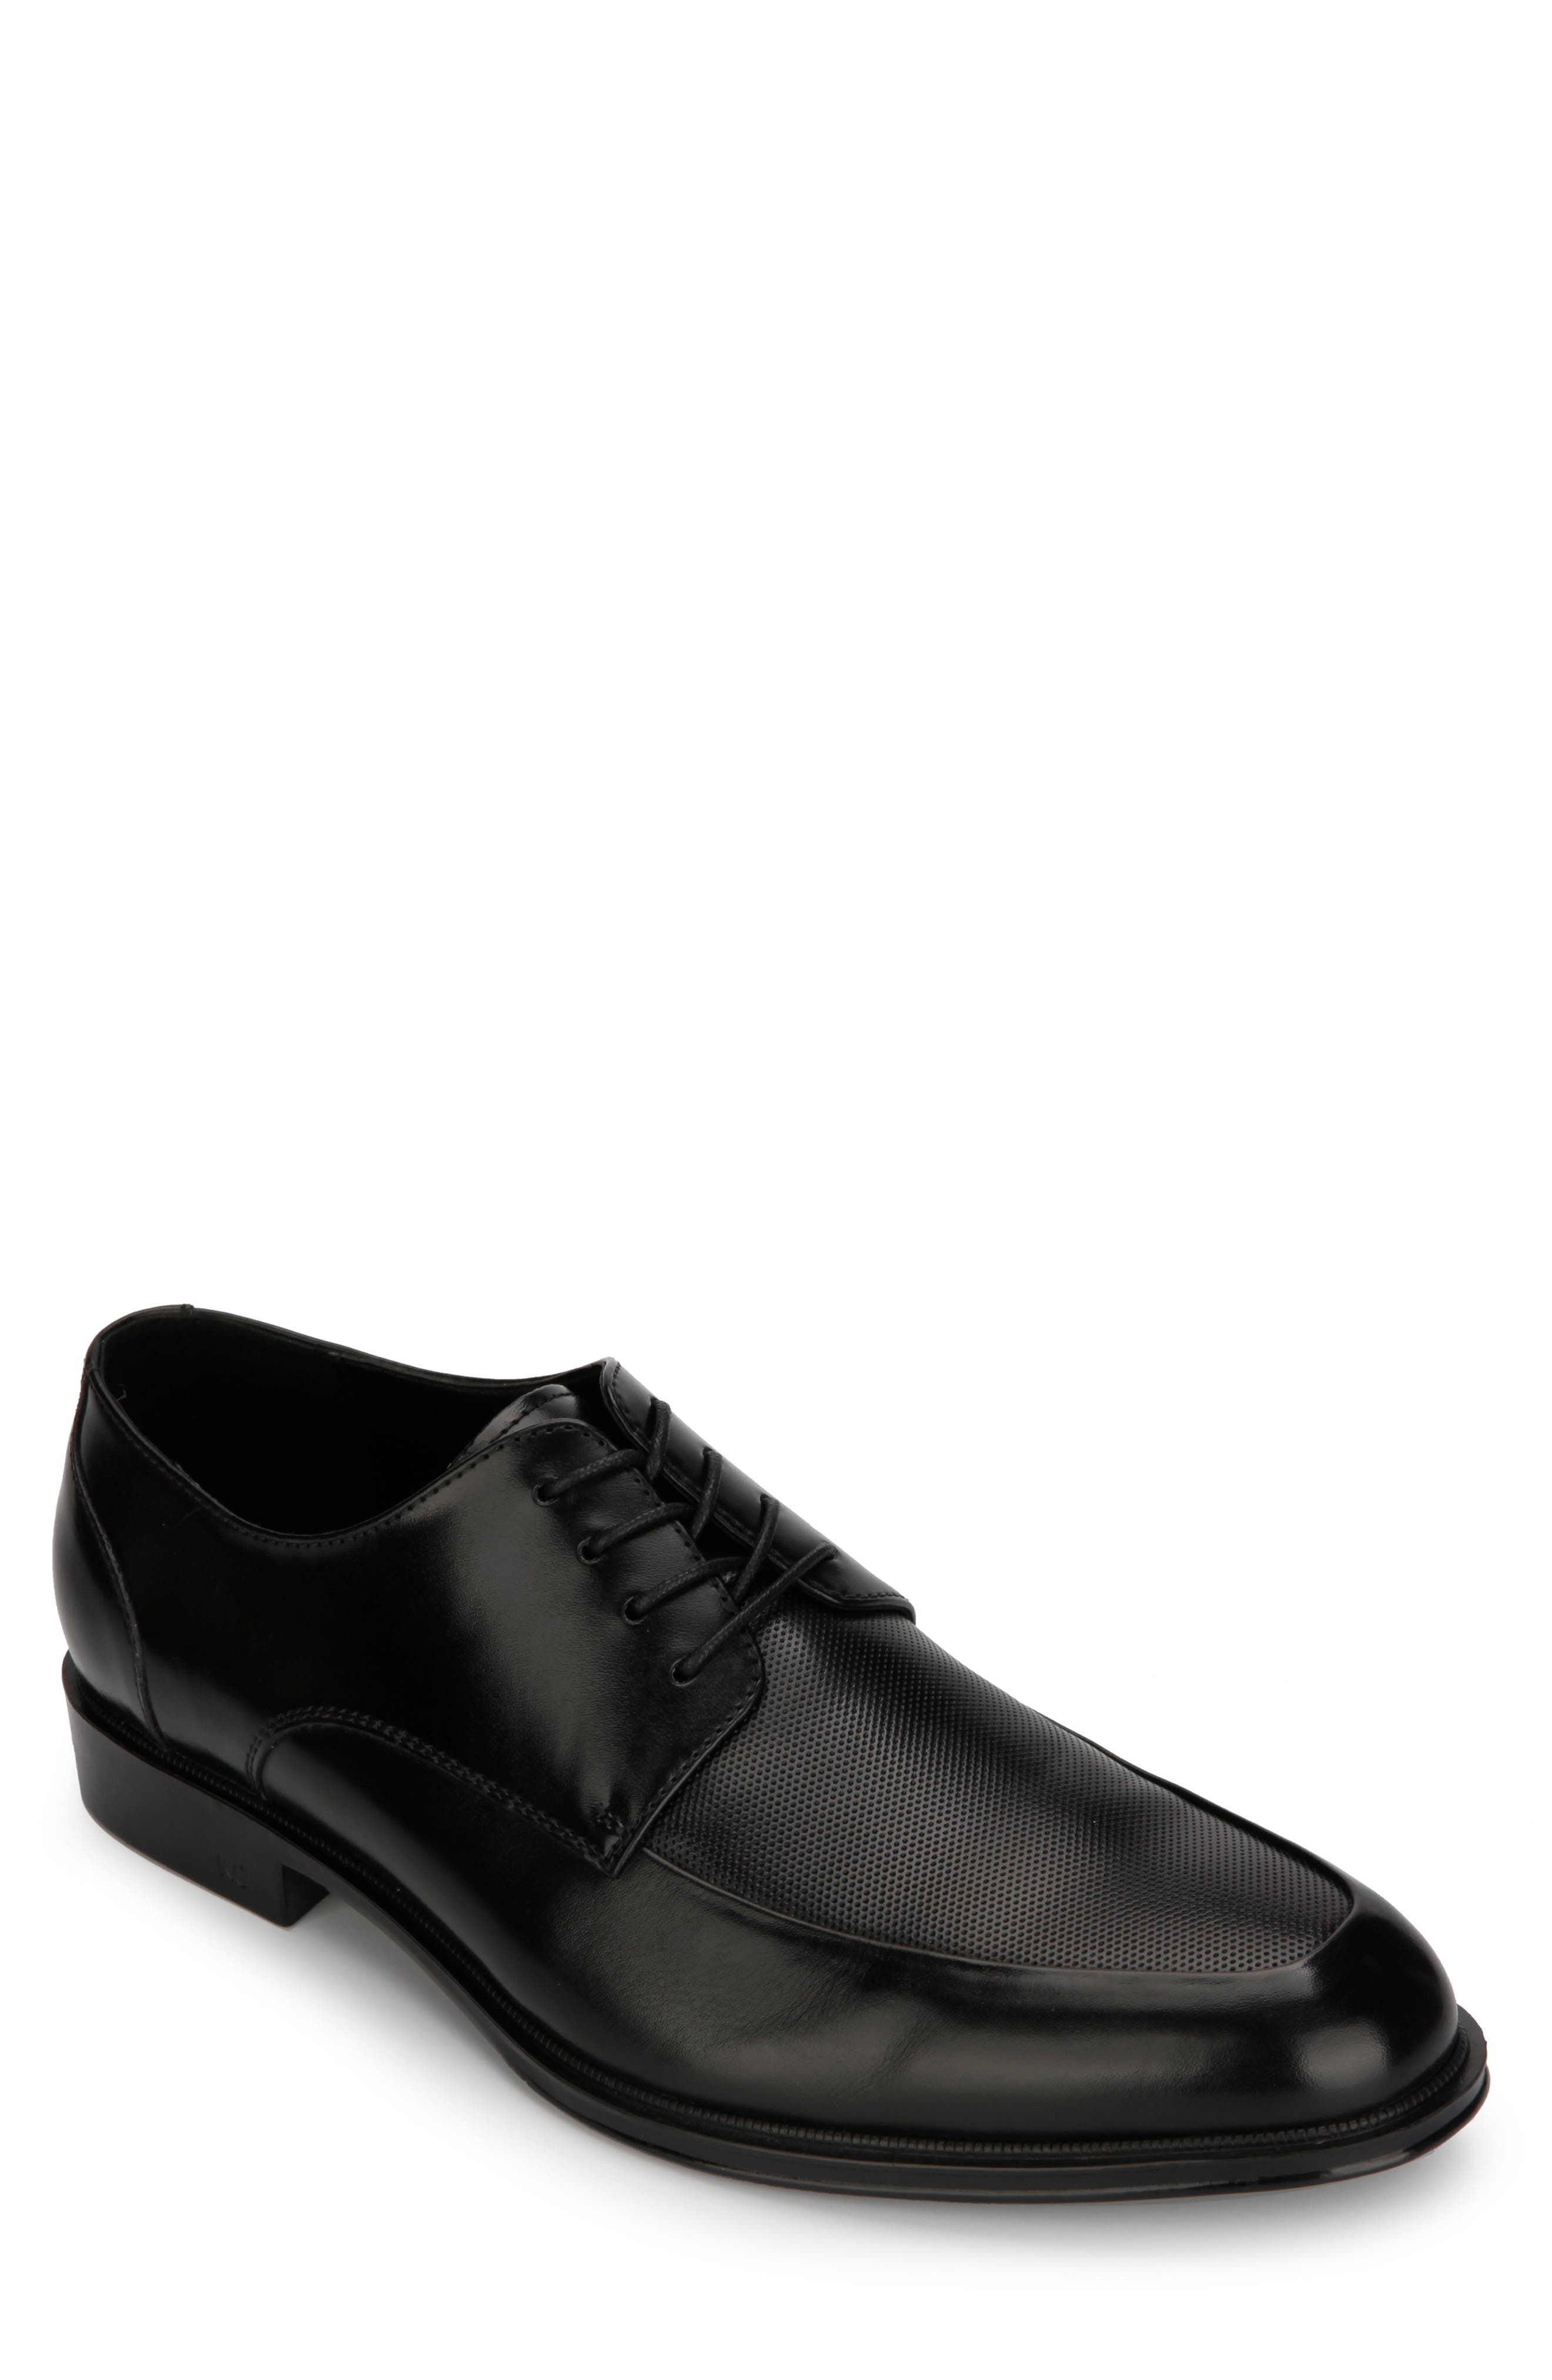 REACTION KENNETH COLE, Zac Moc Toe Derby, Main thumbnail 1, color, BLACK